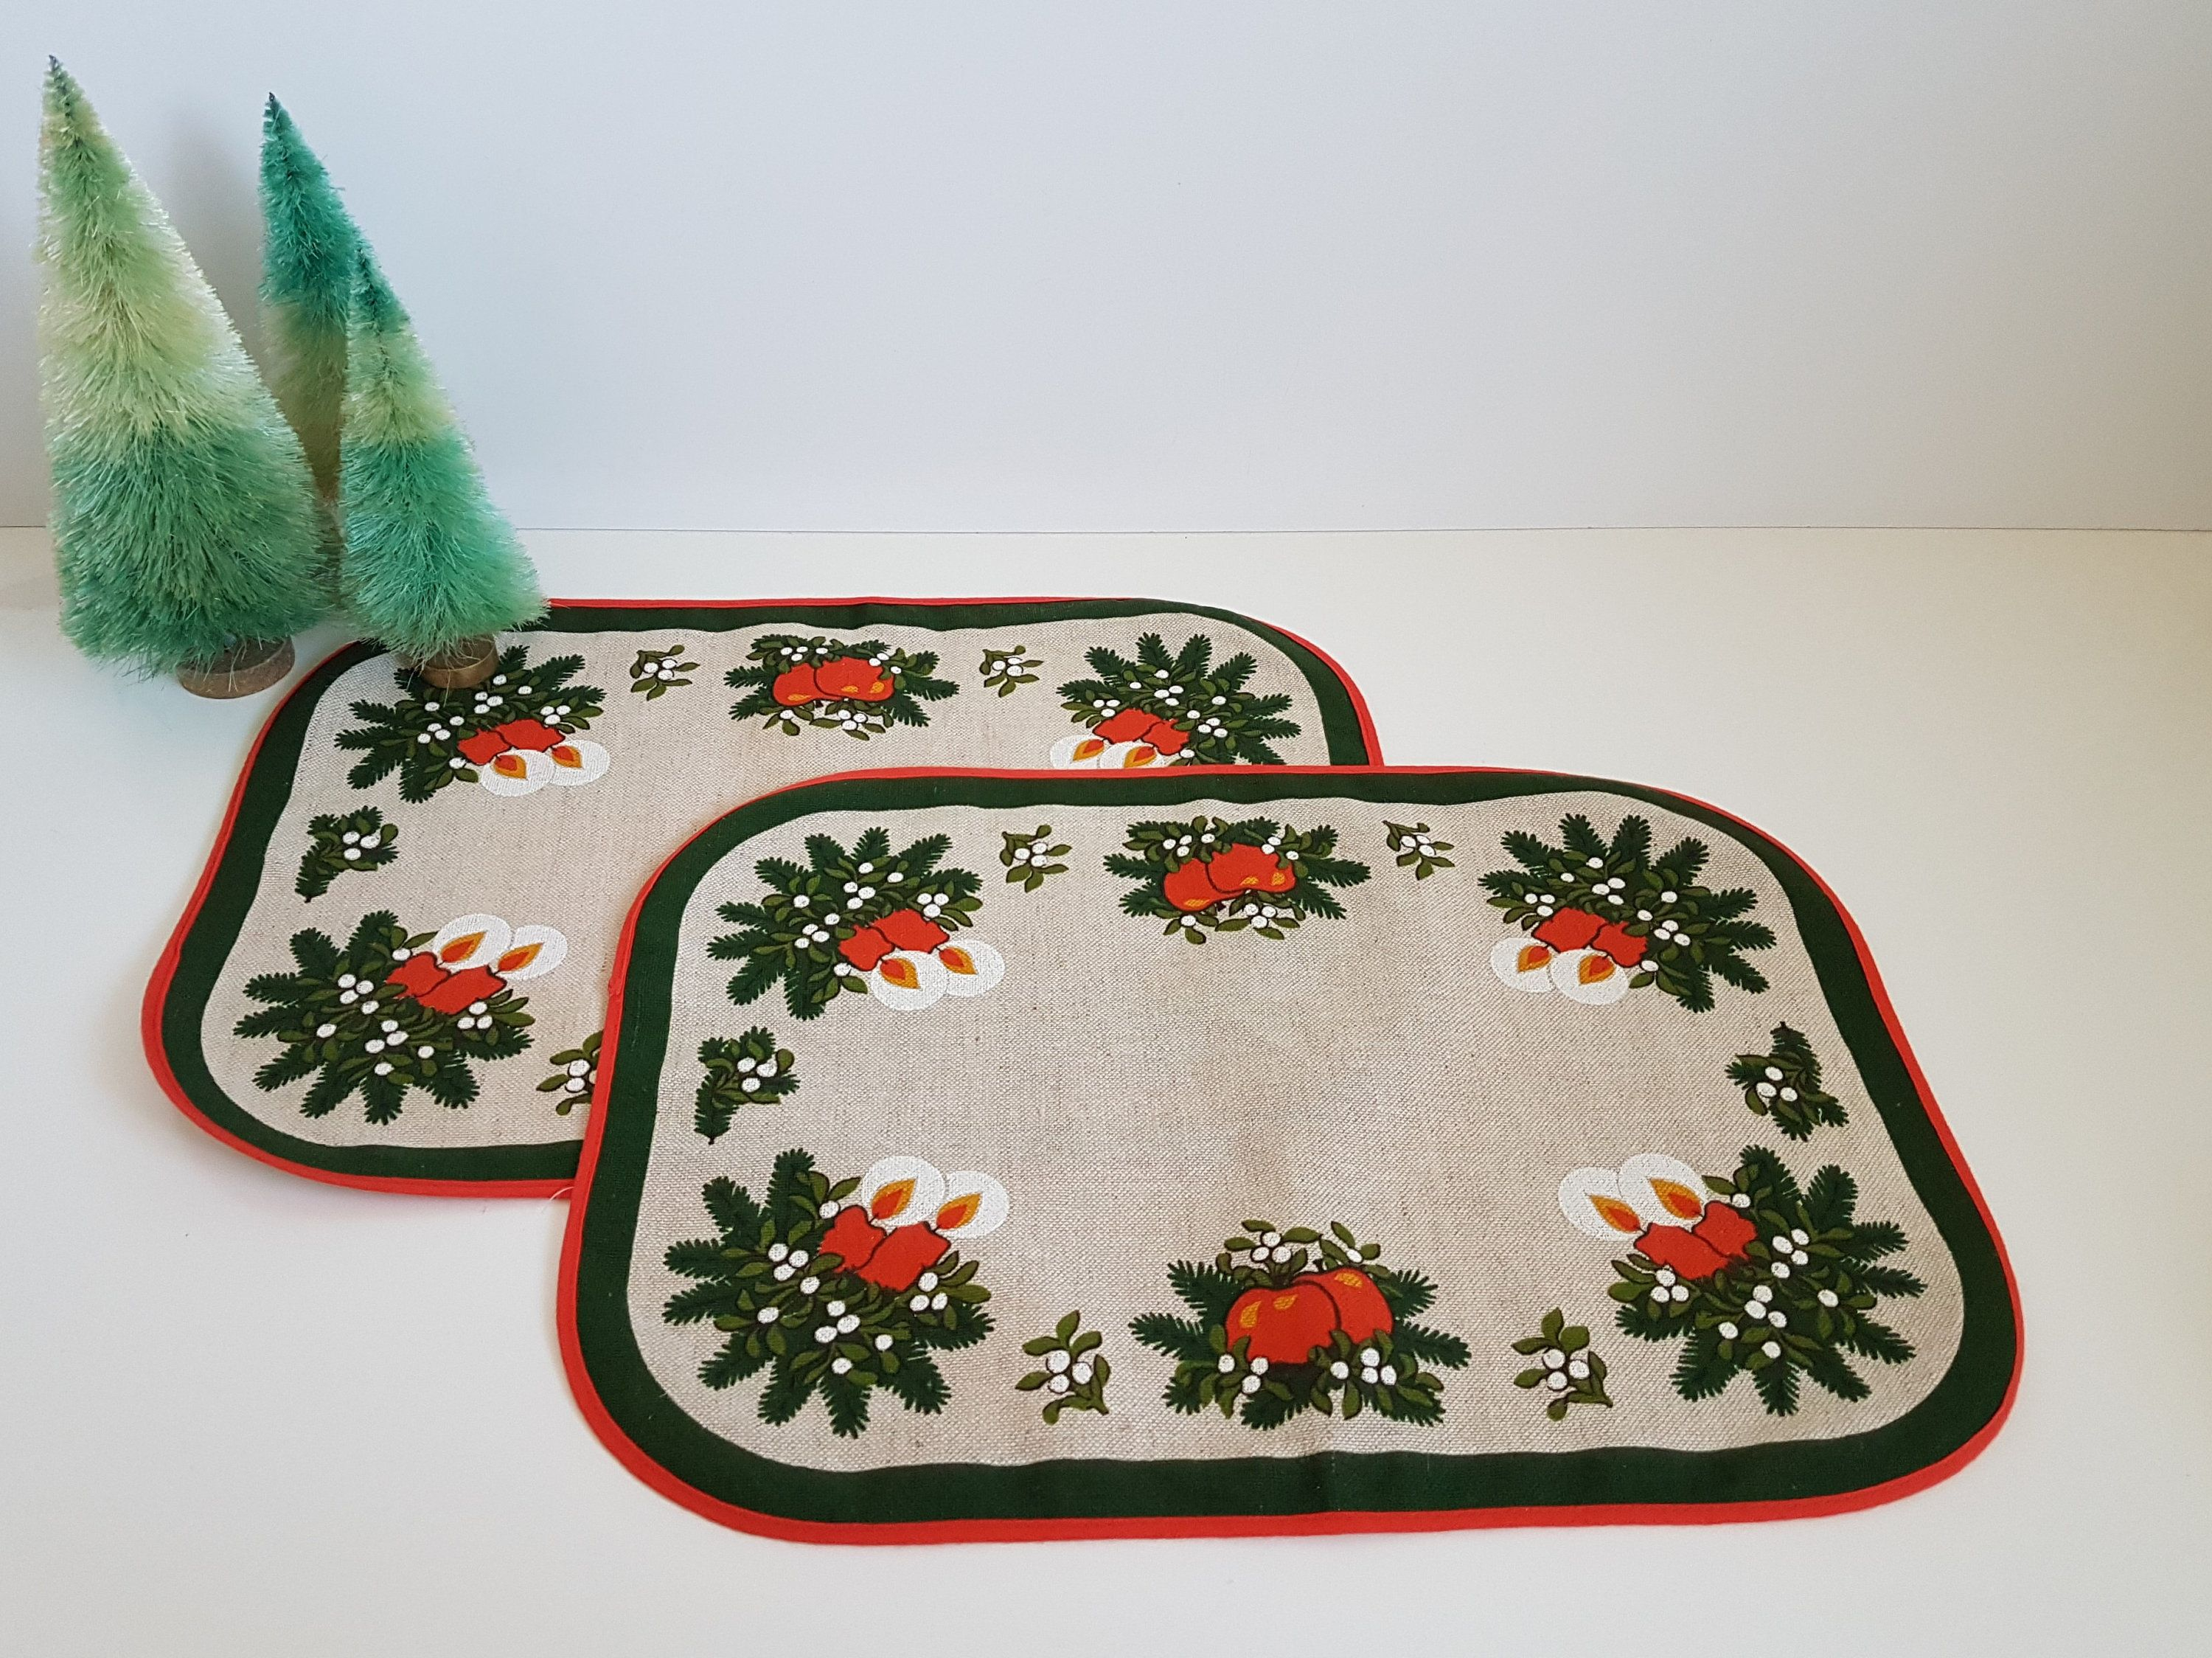 Vintage Christmas Placemats Scandinavian Table Linens Set Of Two Christmas Placemats Vintage Christmas Placemats